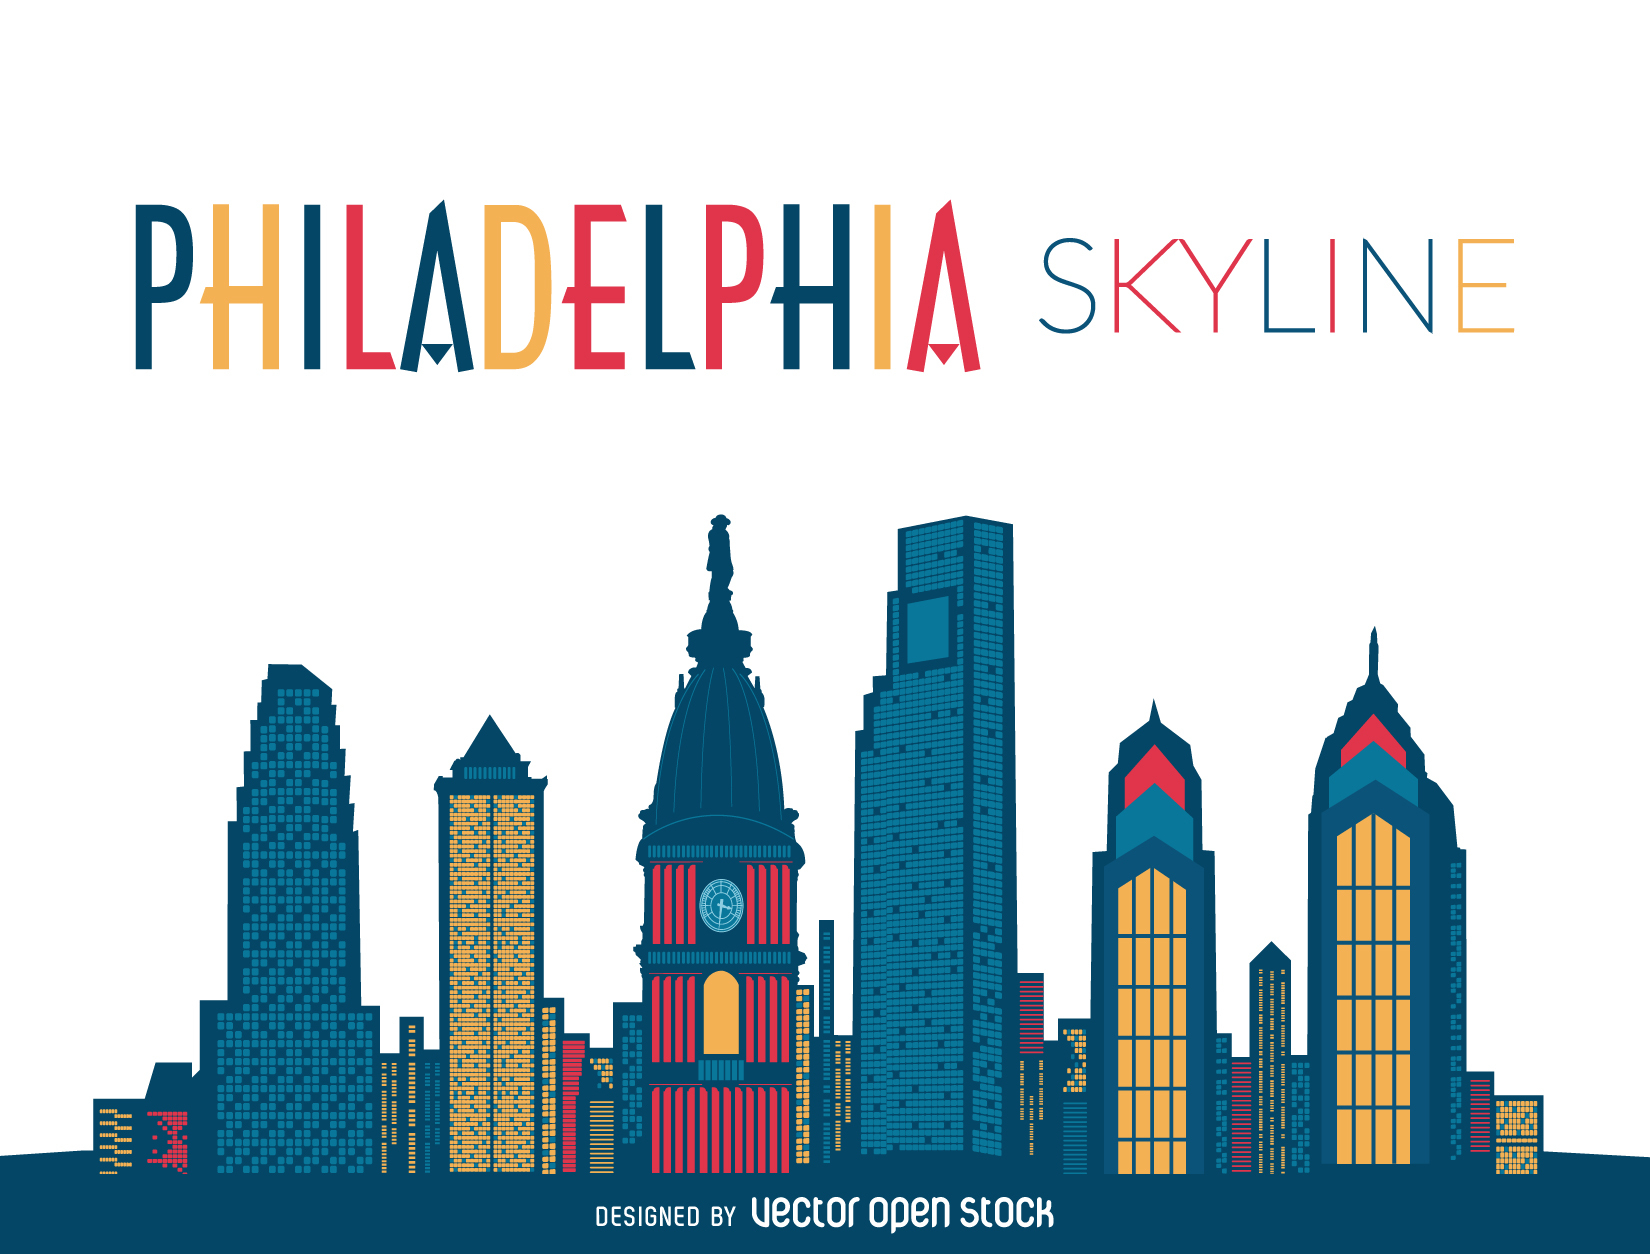 1650x1254 Modern and flat illustration featuring Philadelphia skyline with